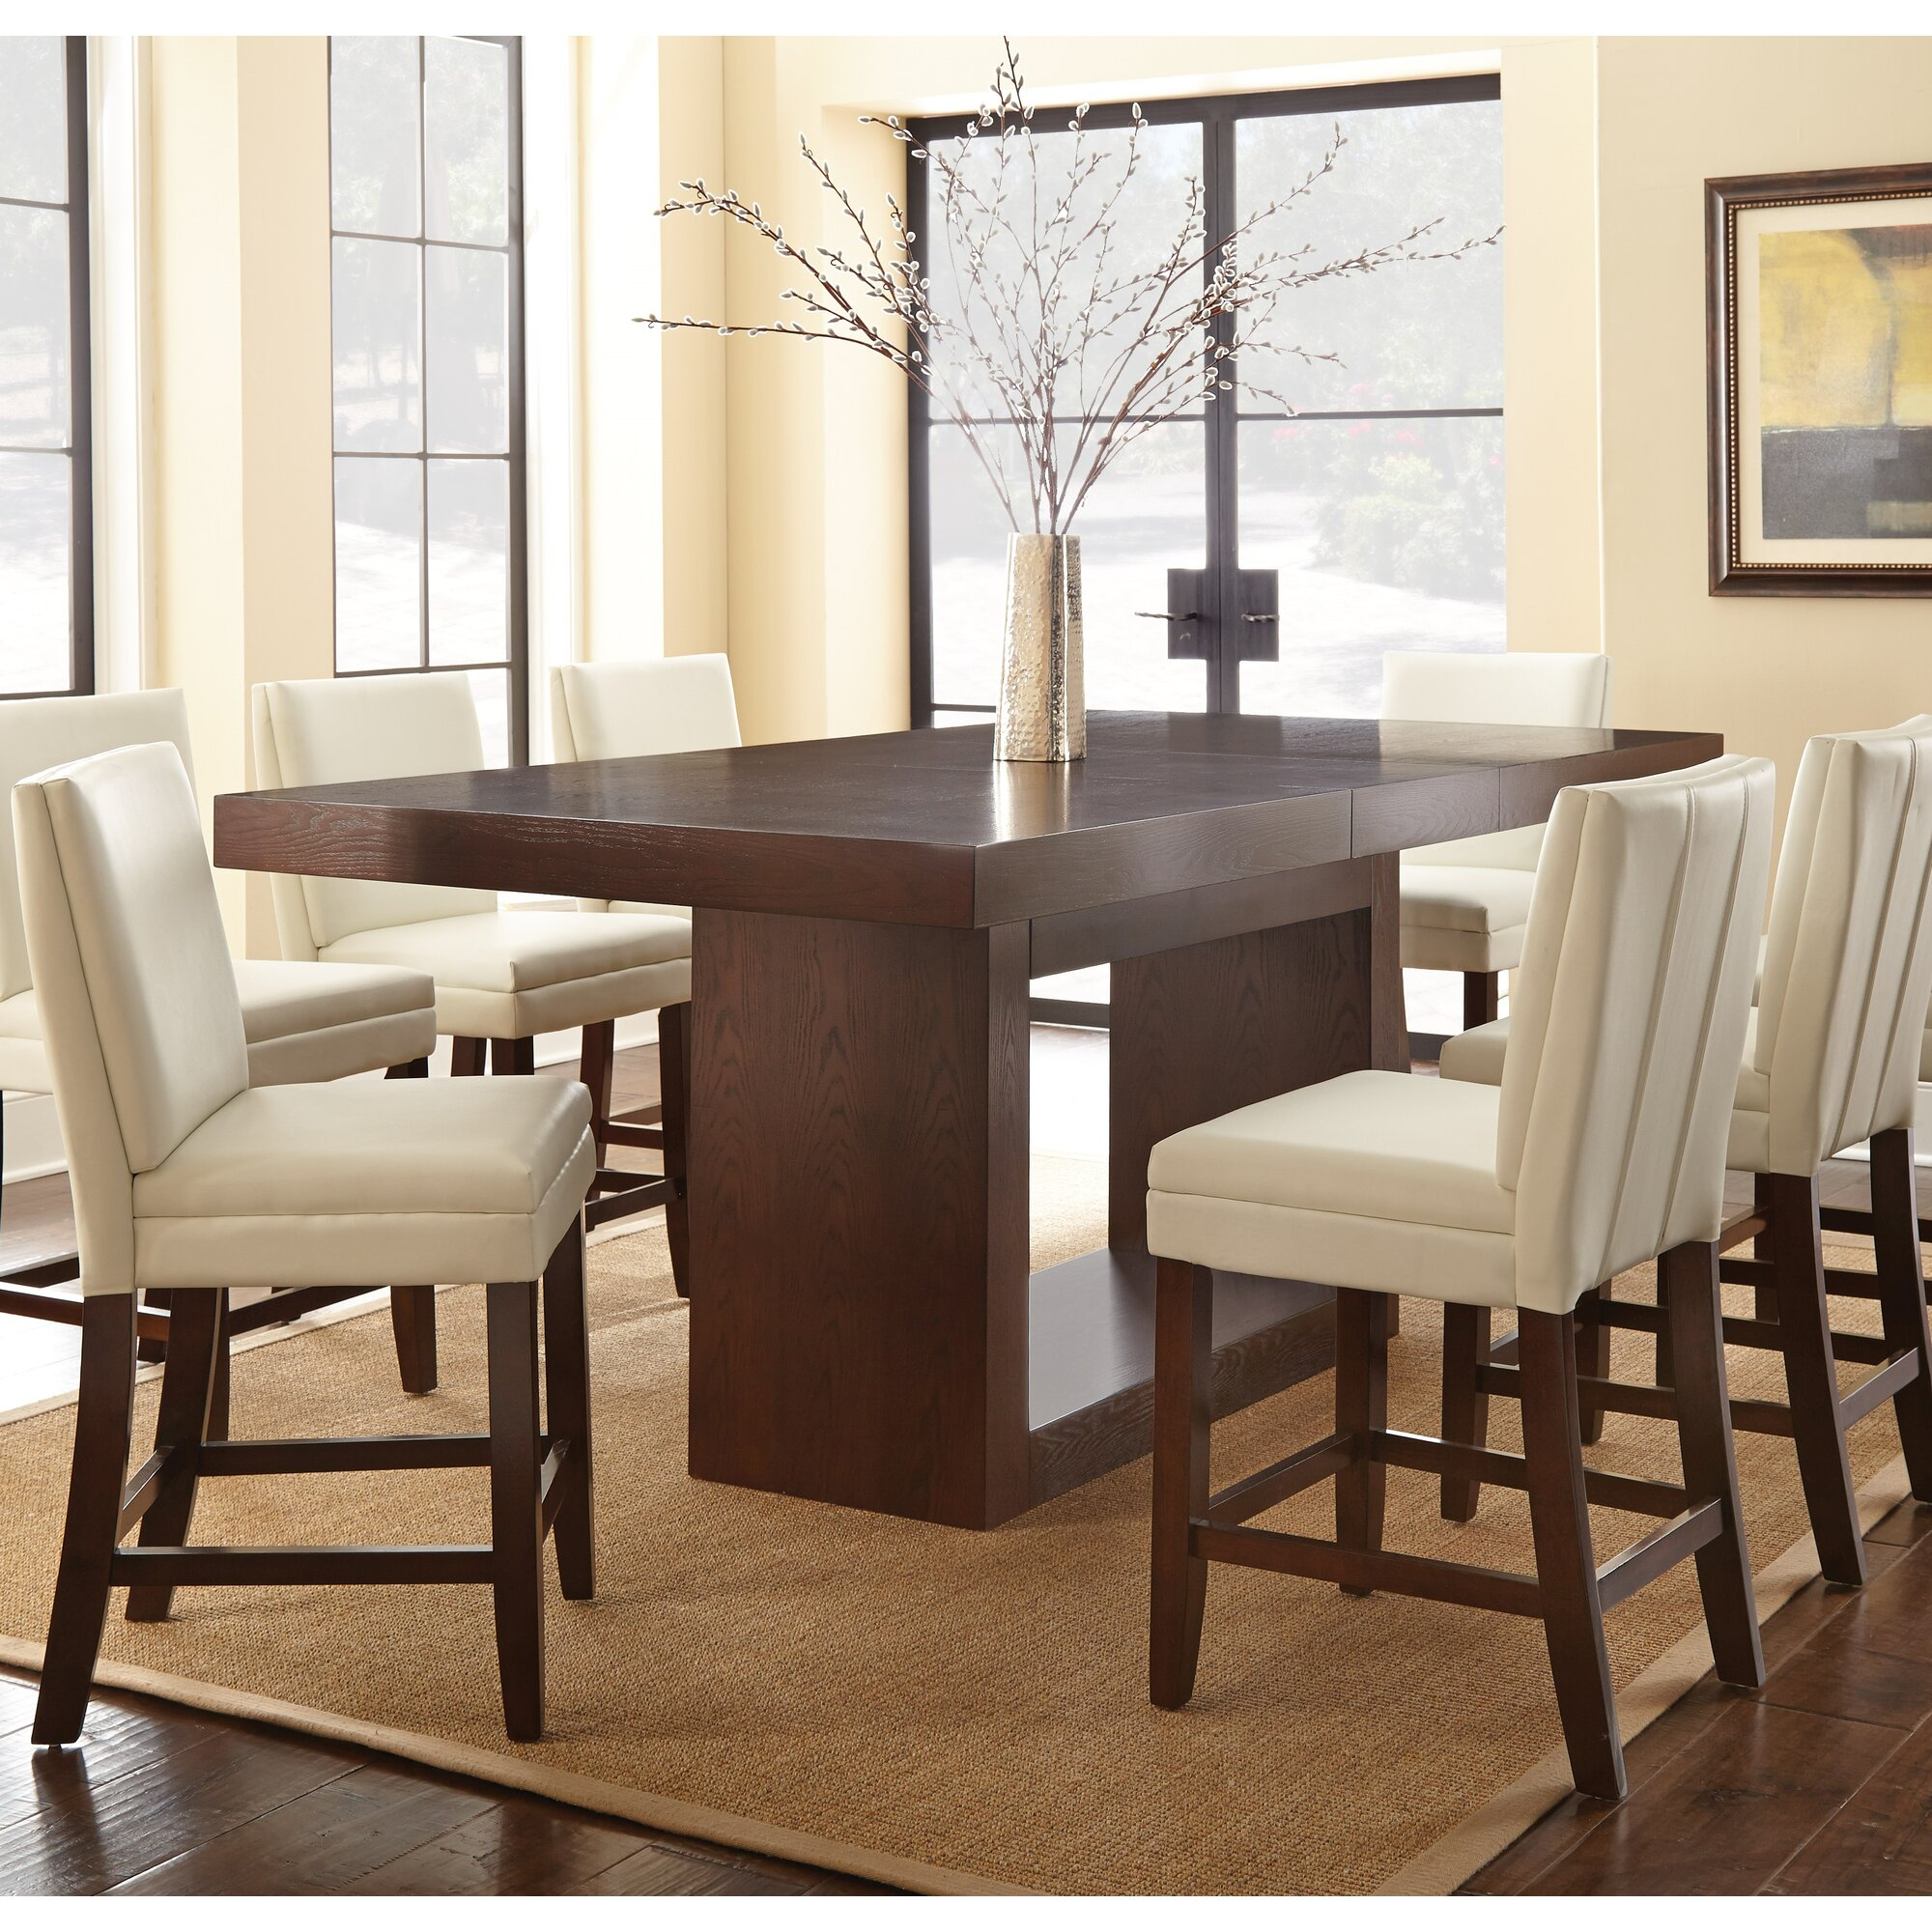 antonio counter height dining table - Dining Room Table Height